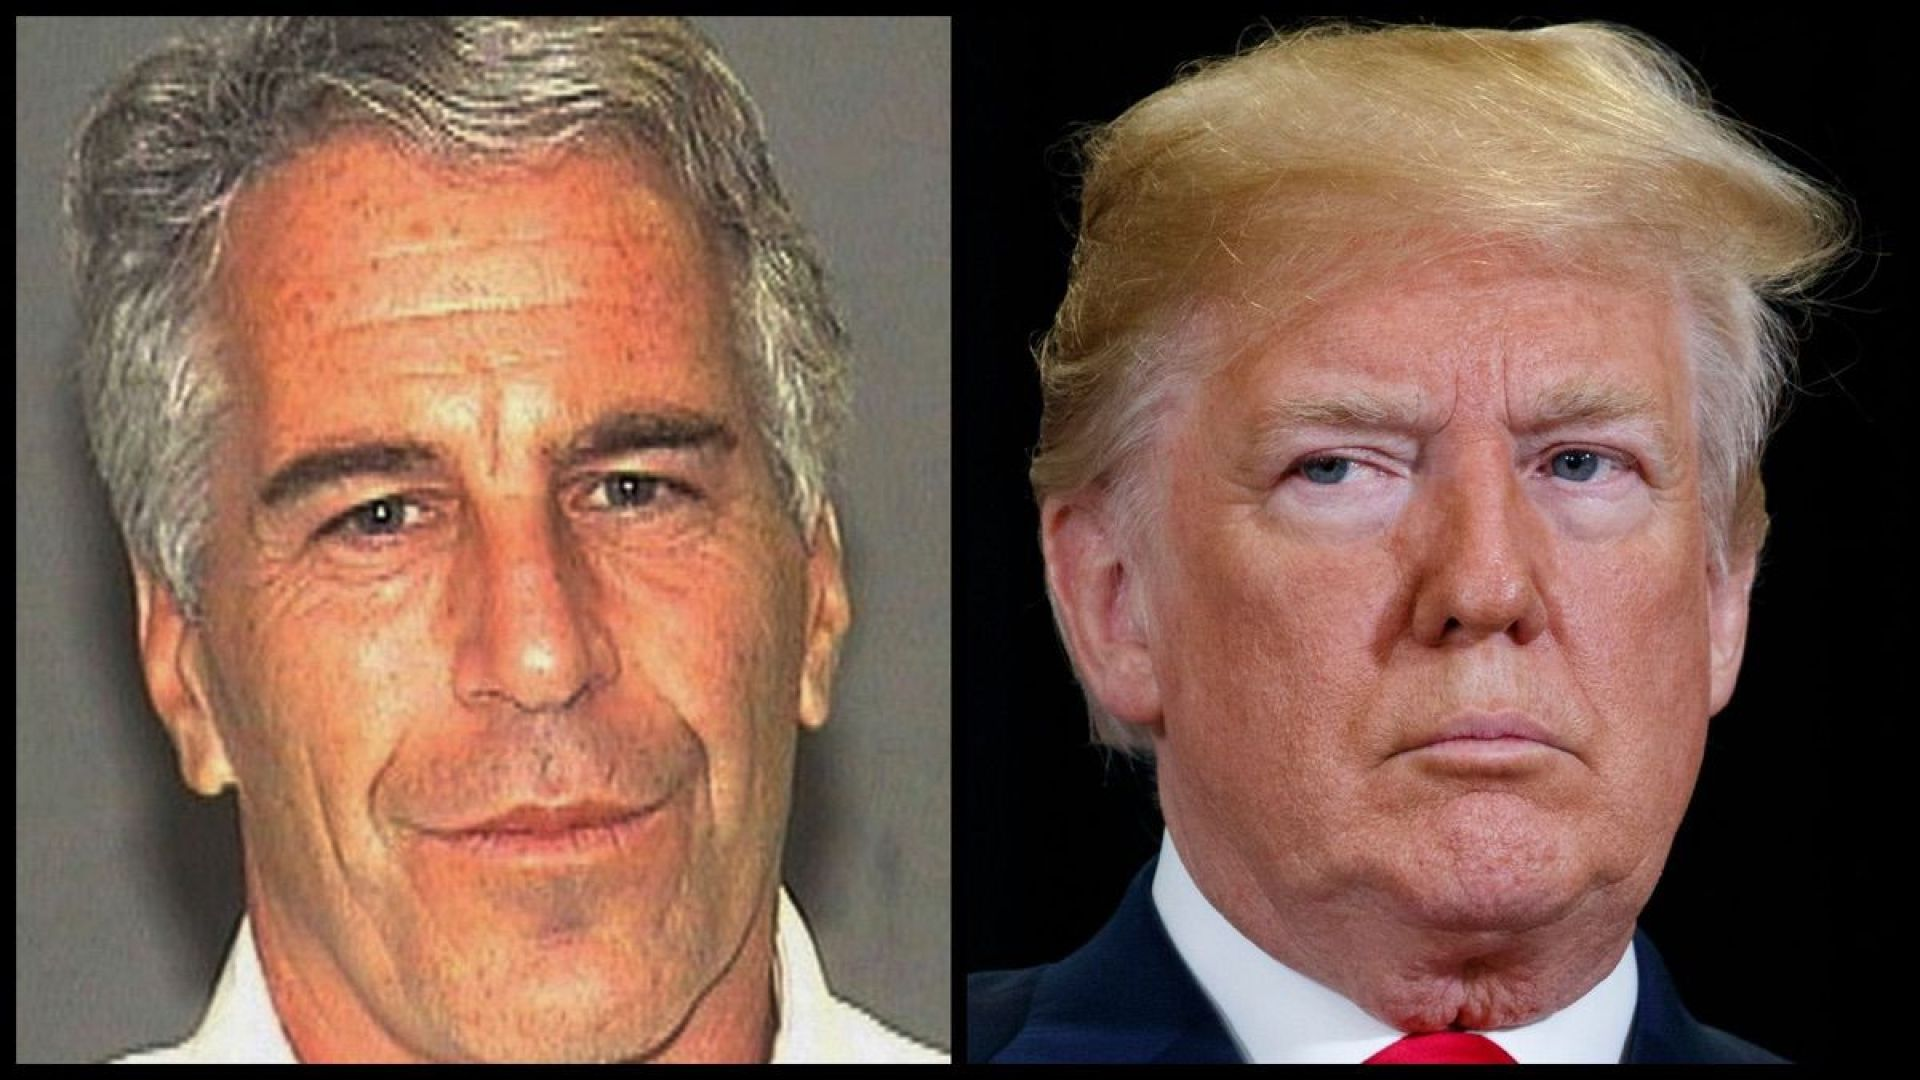 Jeffrey Epstein (mug shot) and Donald Trump (AP)